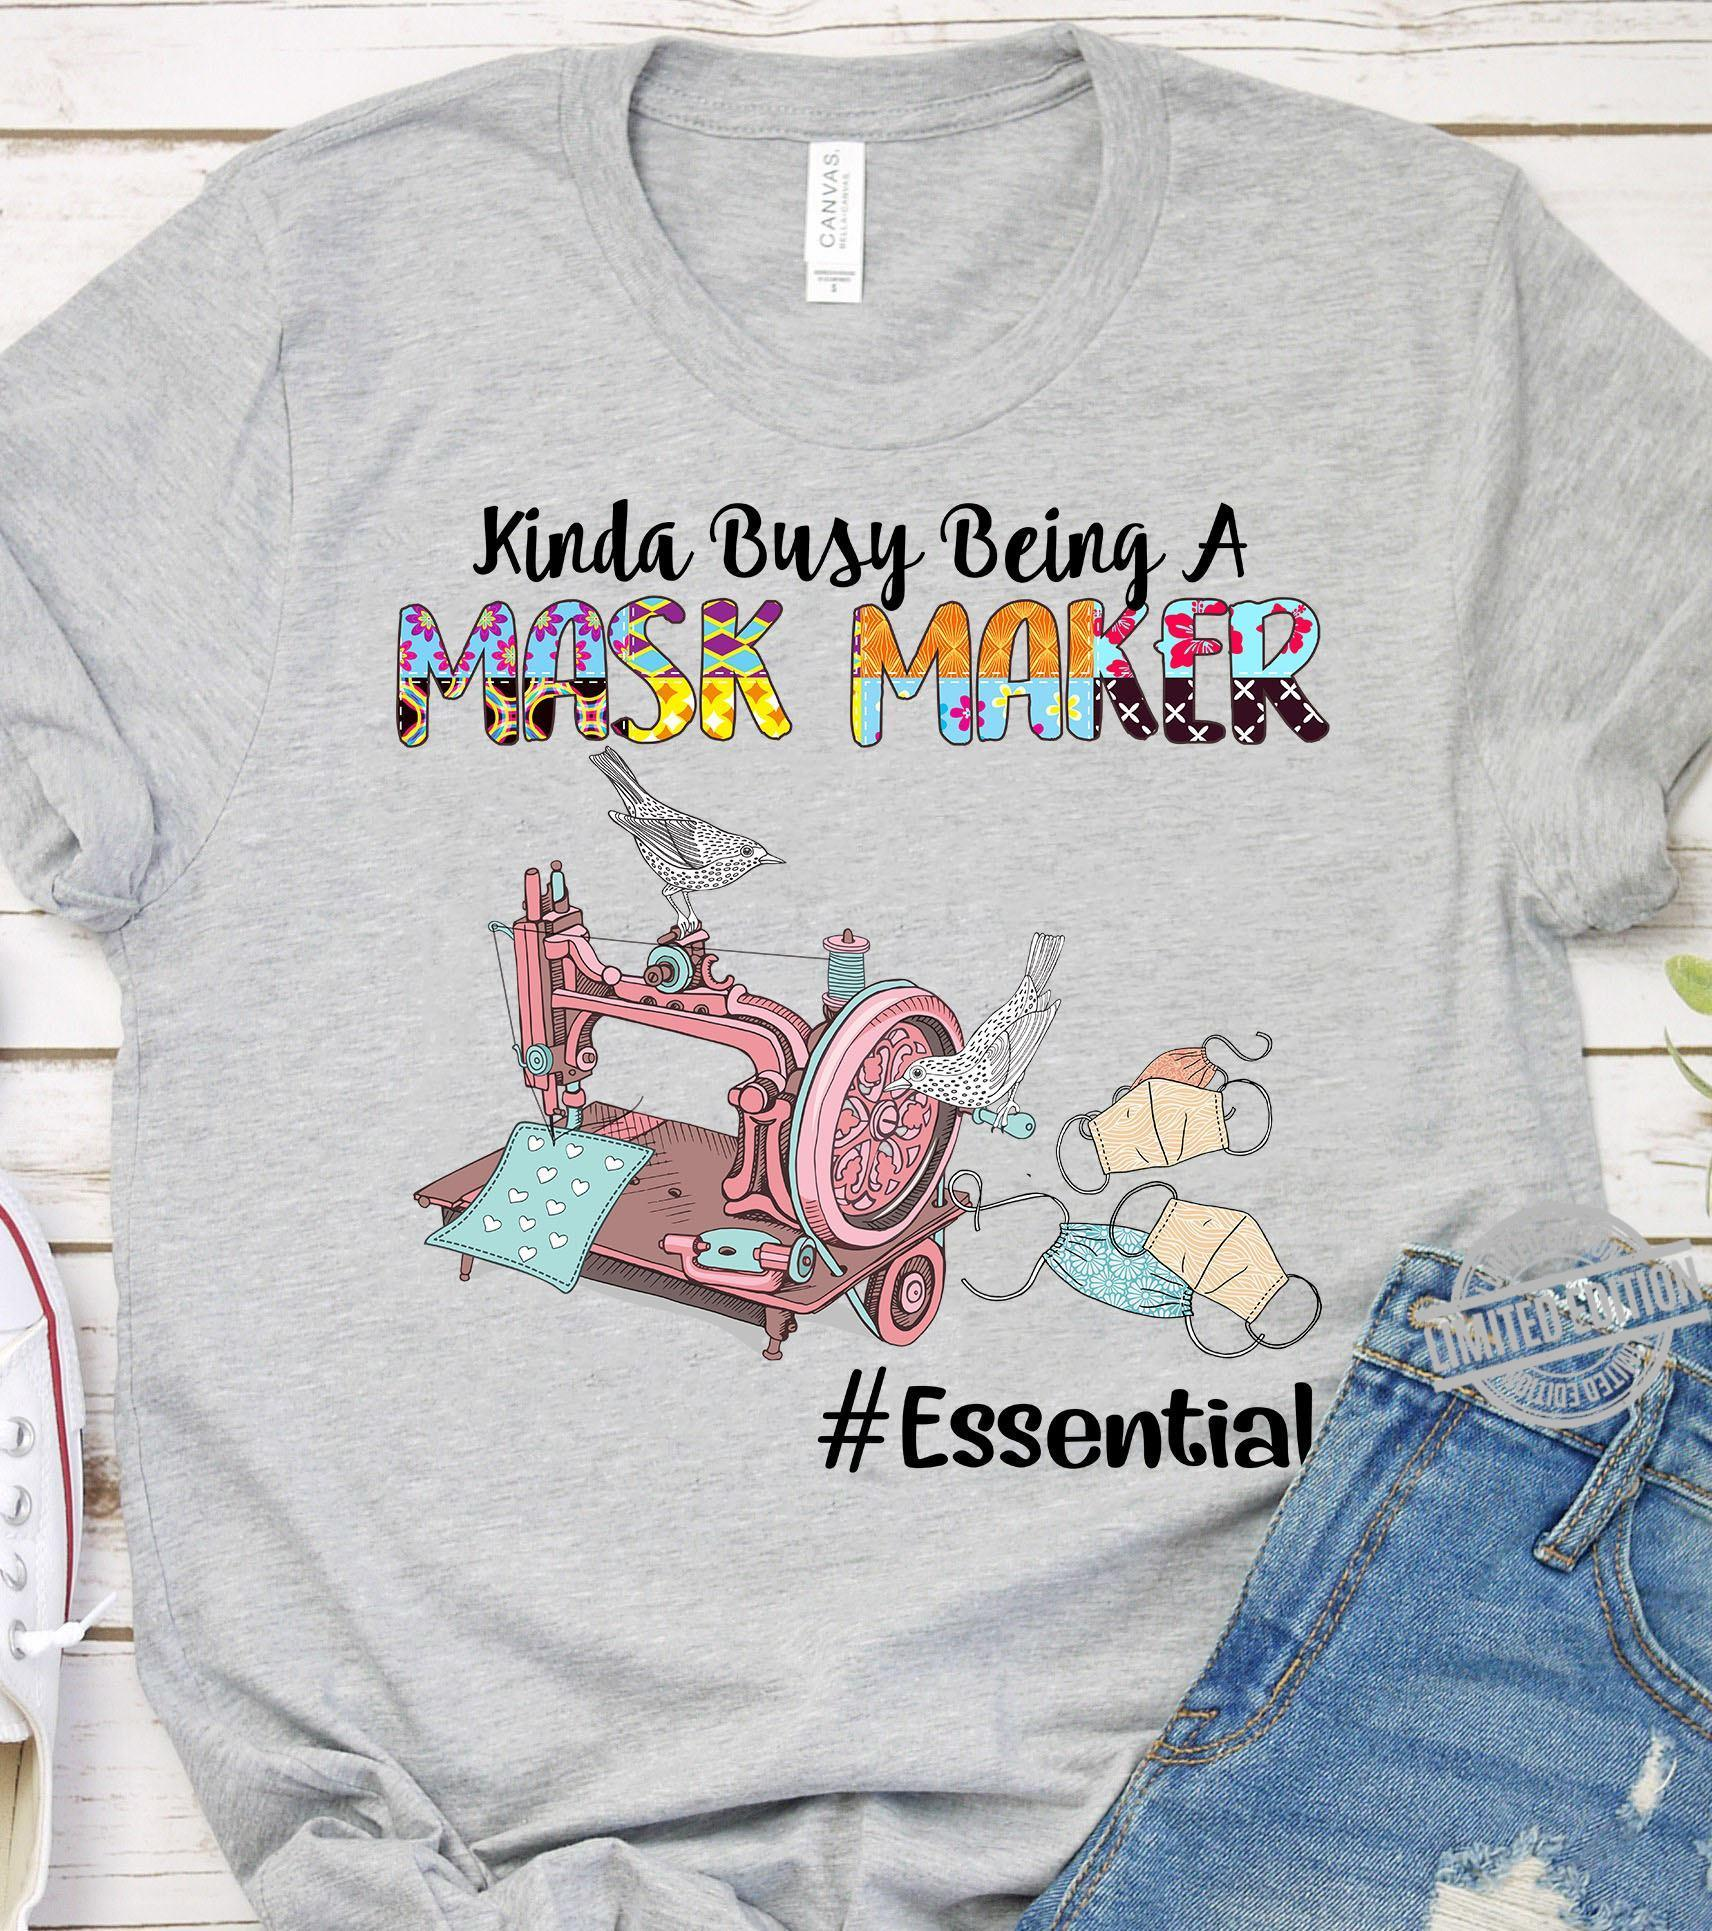 Kinda Busy Being A Mask Maker Essential Shirt